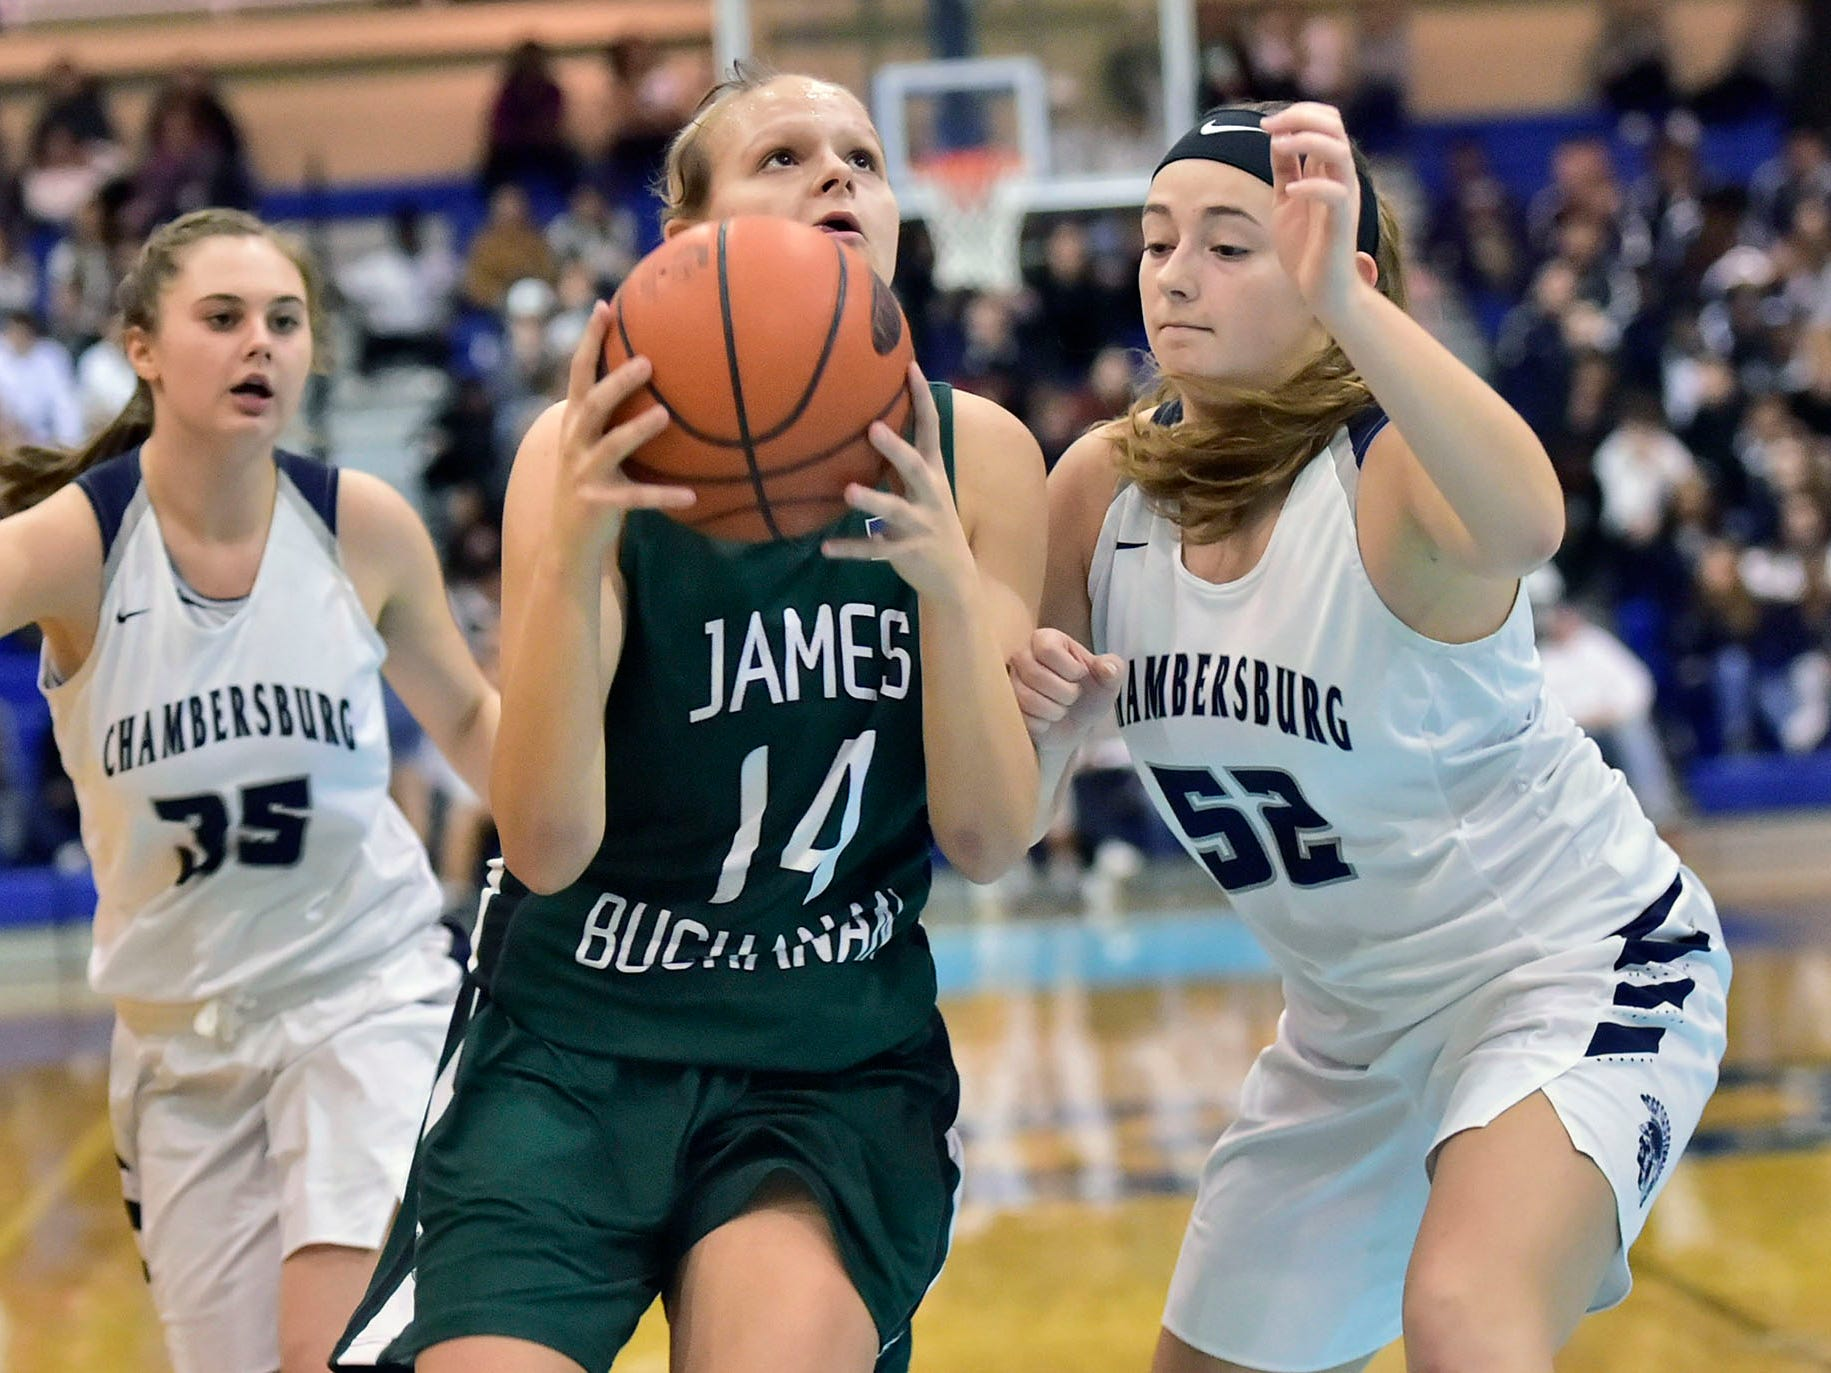 Cass Martin (14) of James Buchanan shoots over Sydney Schmus (35) and Marlee Wrights (52). Chambersburg played James Buchanan girls during the Franklin County Tip-Off Tournament, Friday, Dec. 7, 2018.